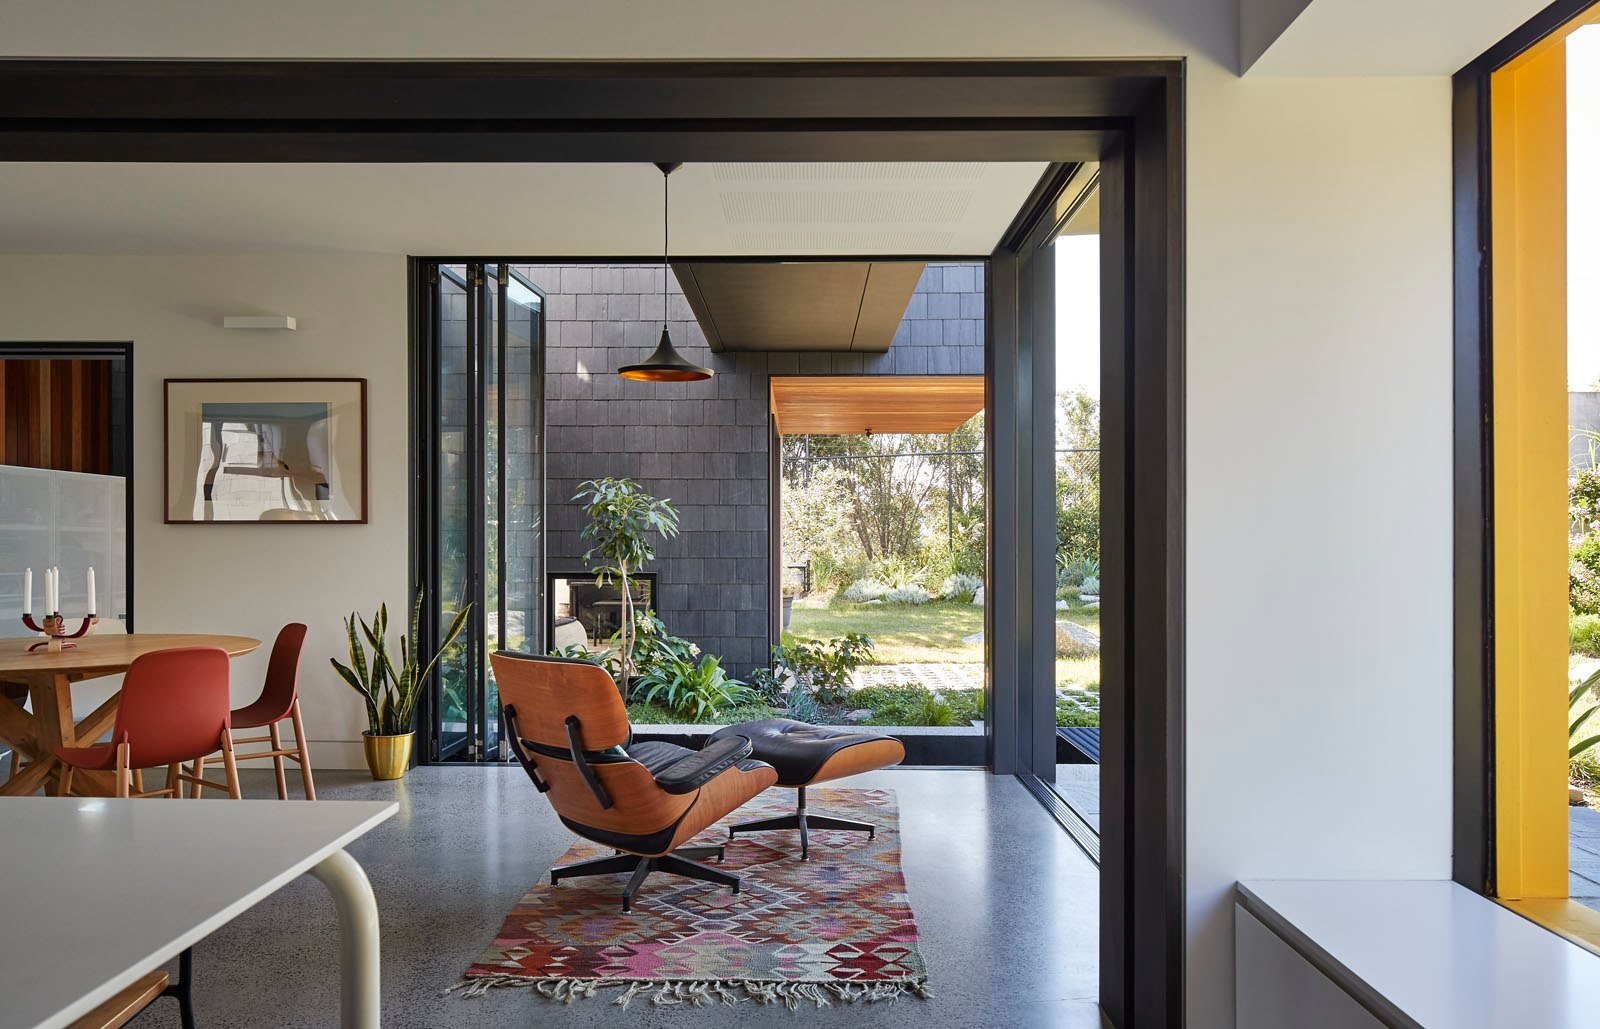 6_Charles House_Austin Maynard Architects_Inspirationist